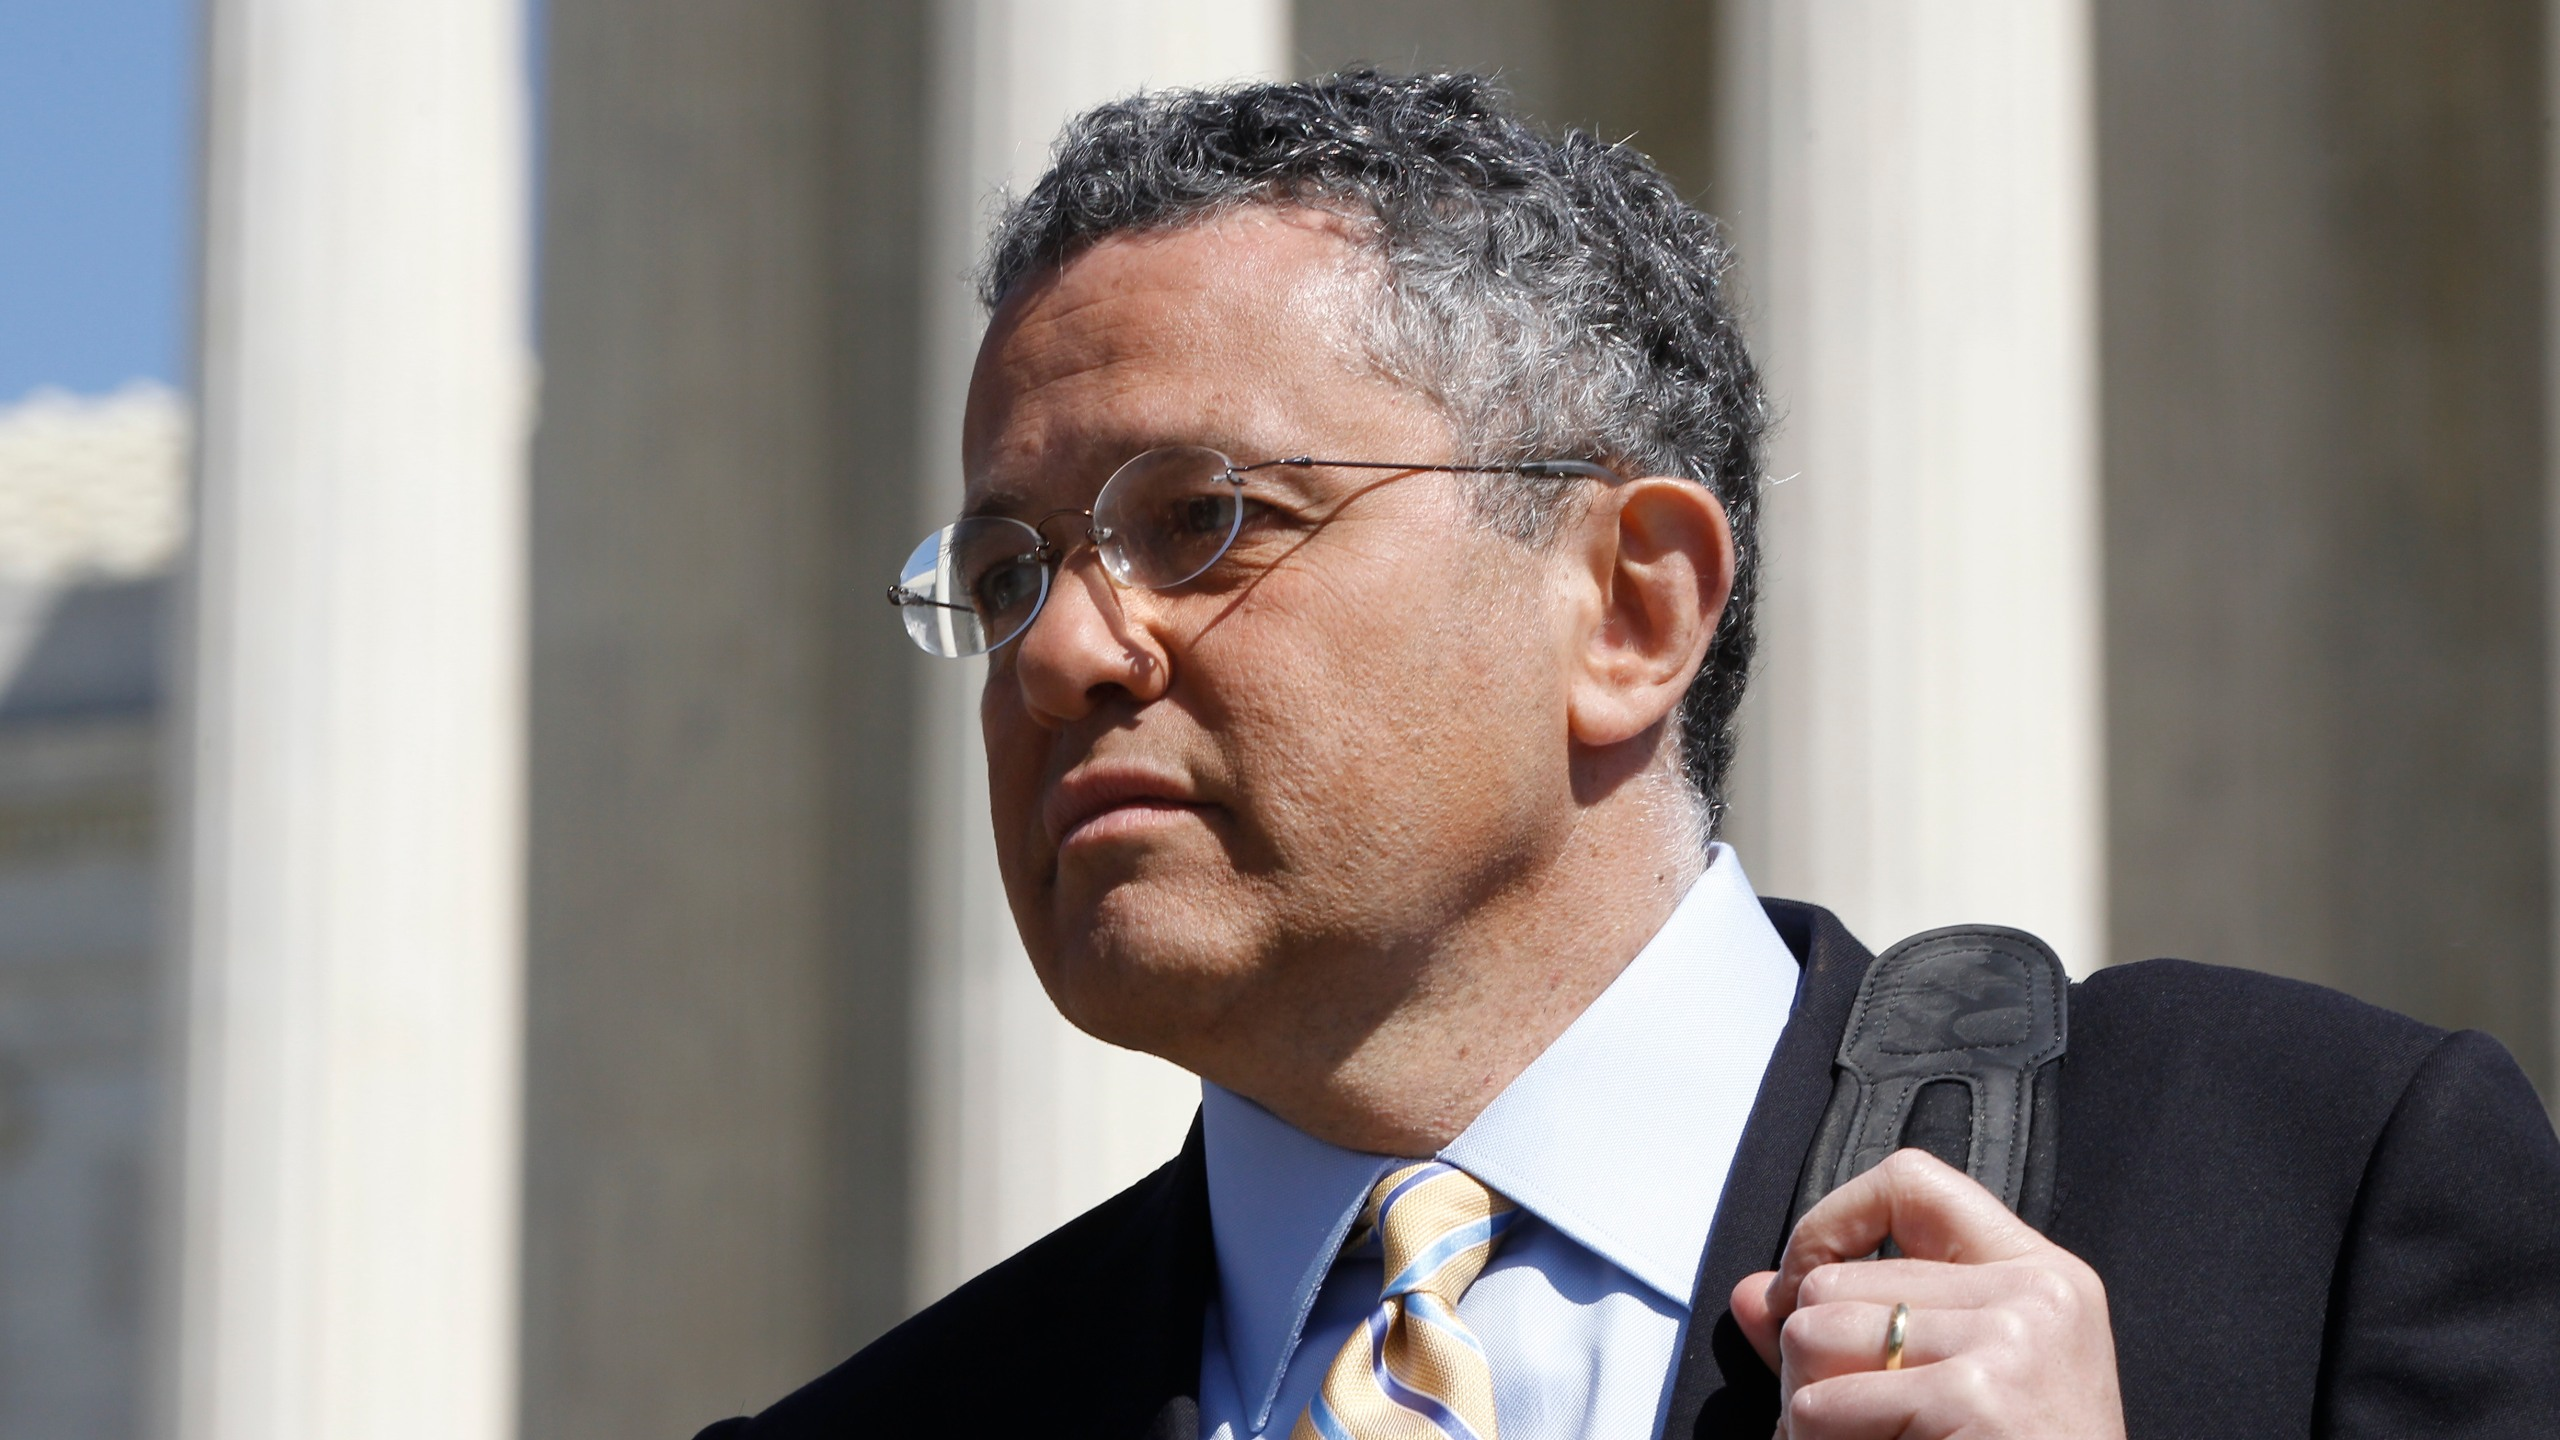 Jeffrey Toobin leaves the Supreme Court after it finished the day's arguments on the health care law signed by President Barack Obama in Washington on March 27, 2012. The New Yorker has parted ways with longtime staff writer Toobin after he reportedly exposed himself during a Zoom conference last month. He had already been on suspension and is also on leave from CNN, where he has been a legal commentator. (AP Photo/Charles Dharapak/Associated Press)